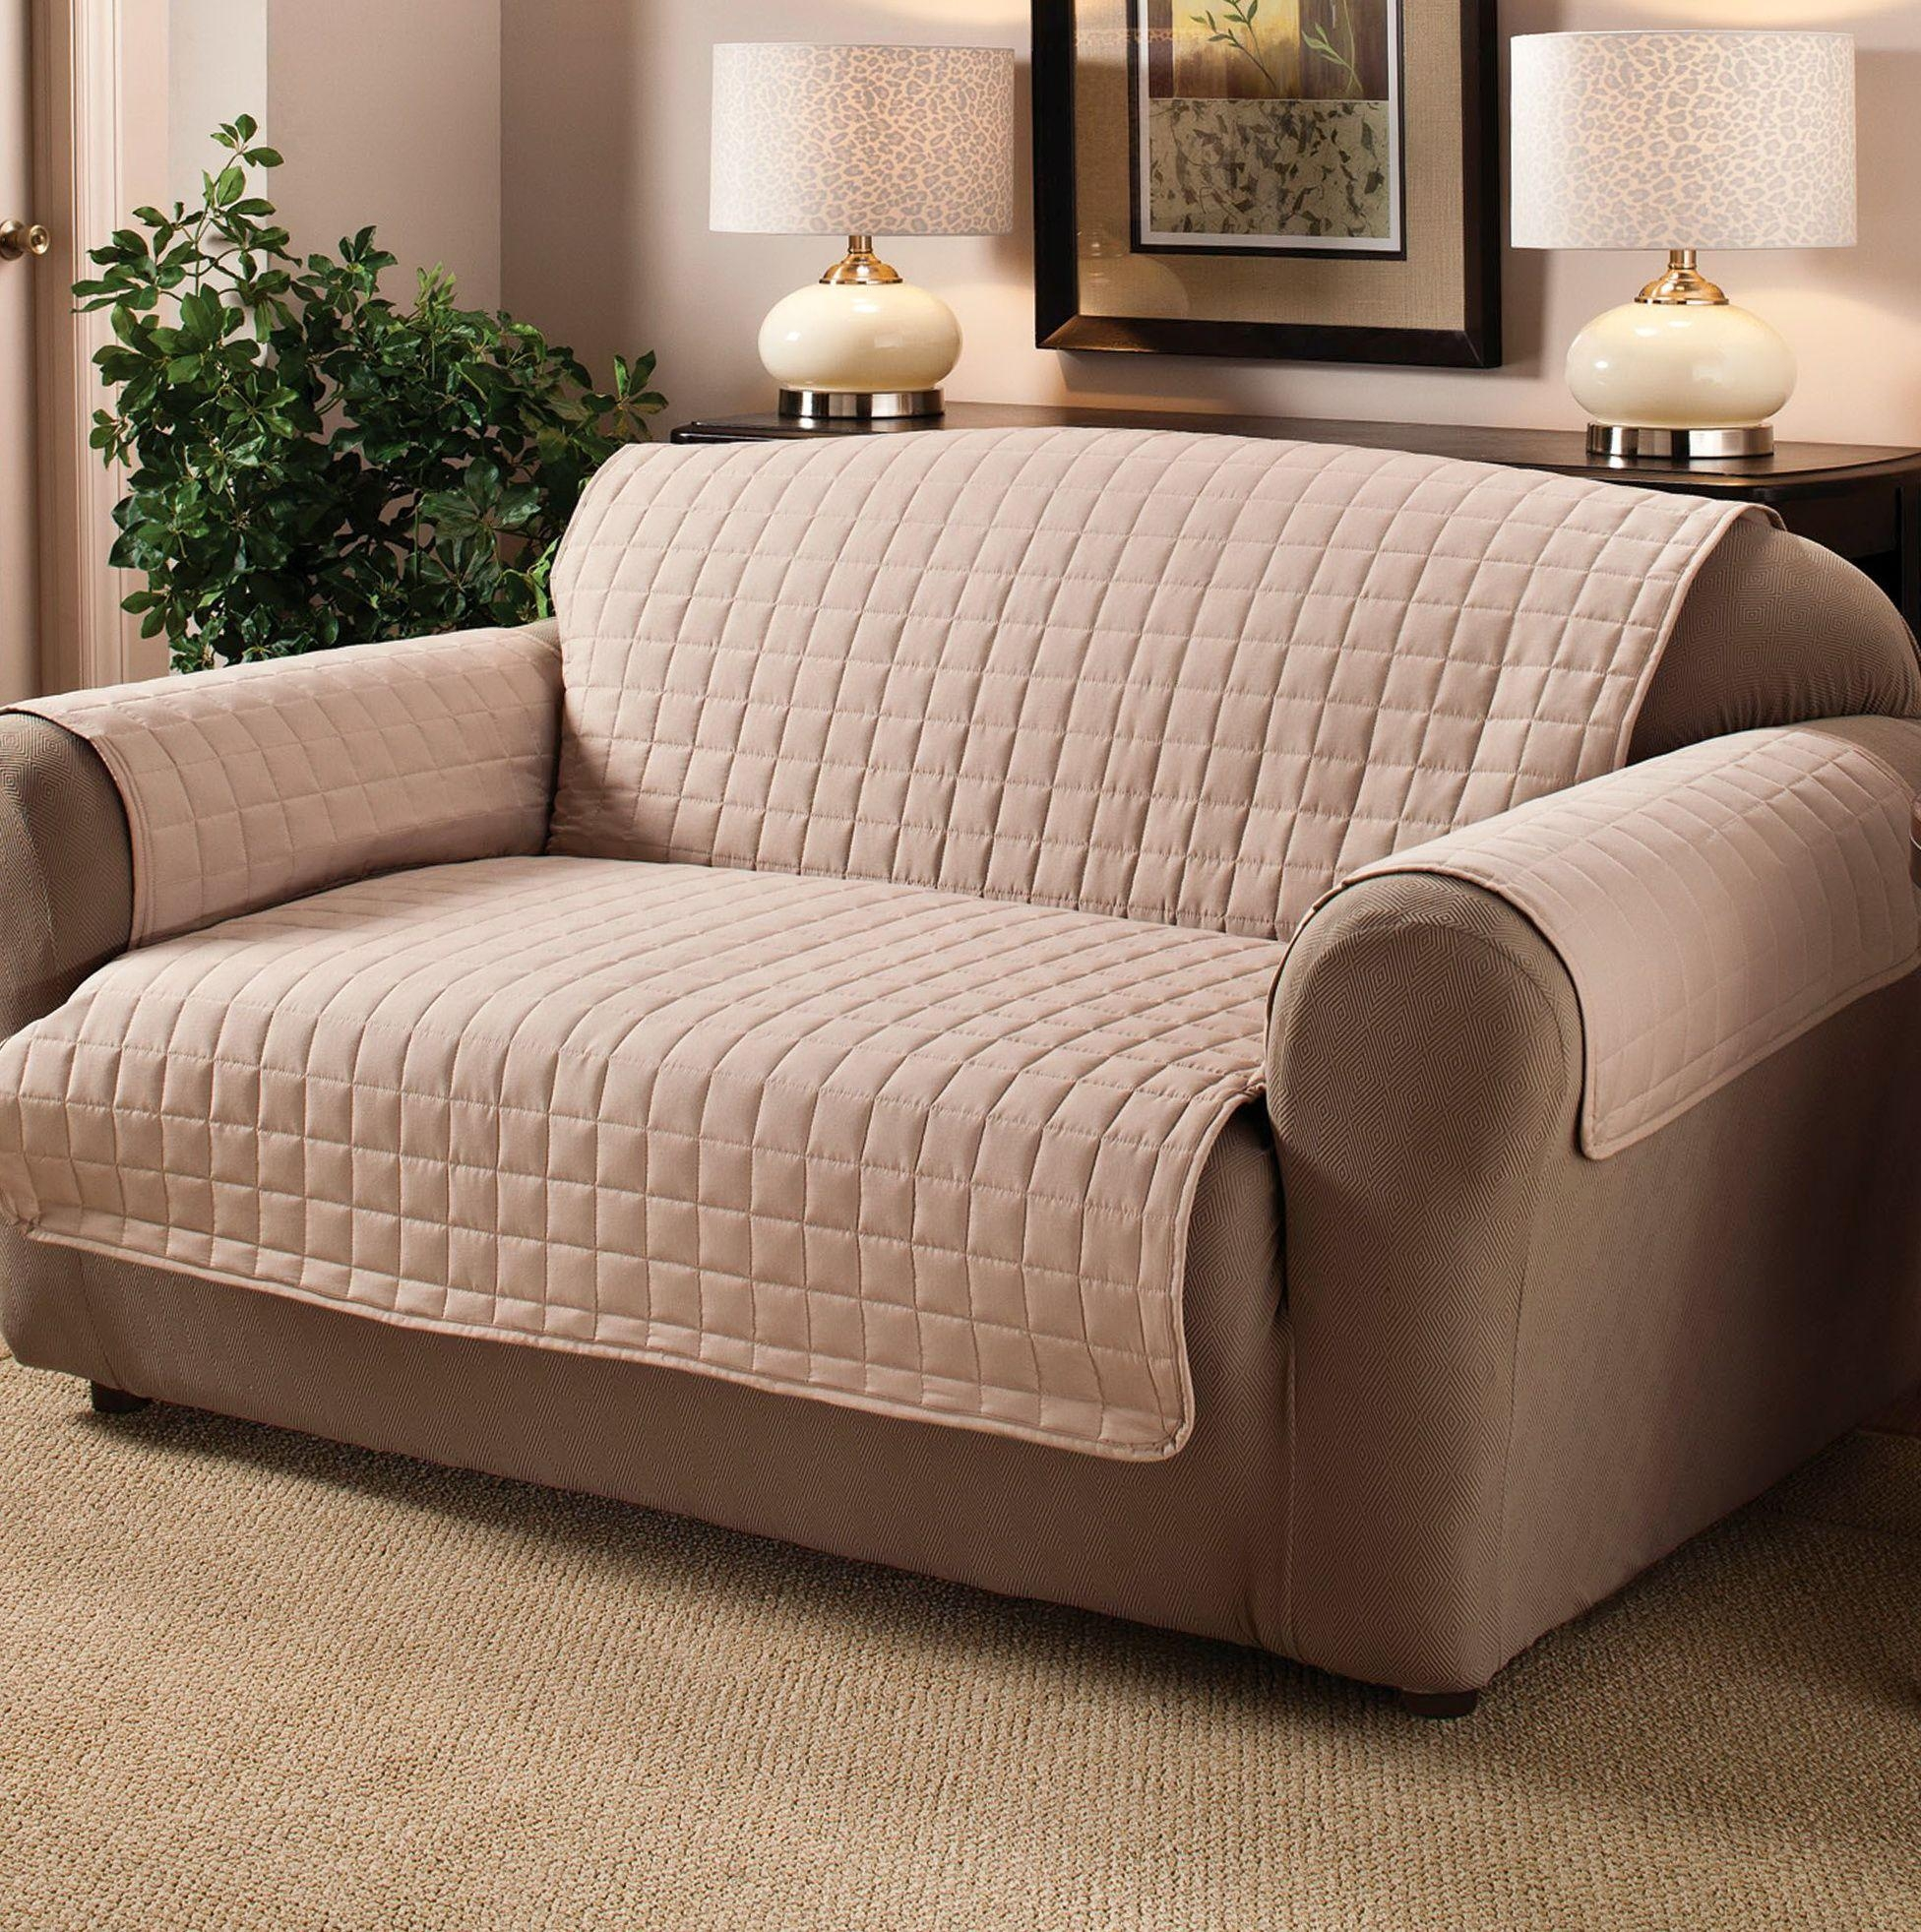 Furniture: Sectional Sofa Covers Walmart | Sofa Covers At Walmart Intended For Slipcover For Leather Sectional Sofas (Image 10 of 21)